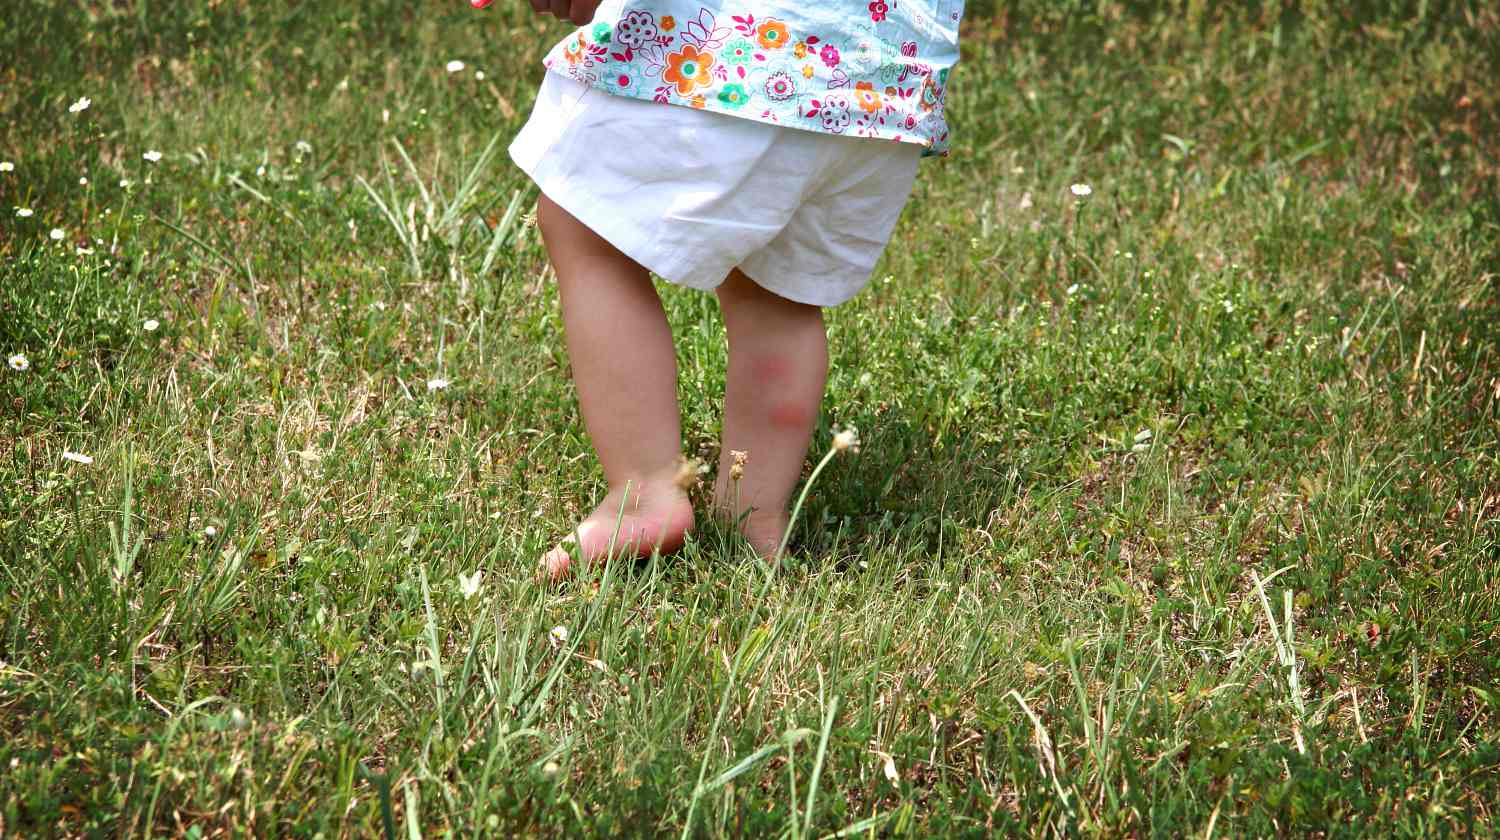 Bug bites on back of baby girl's leg   Home Remedies For Chigger Bites   Featured